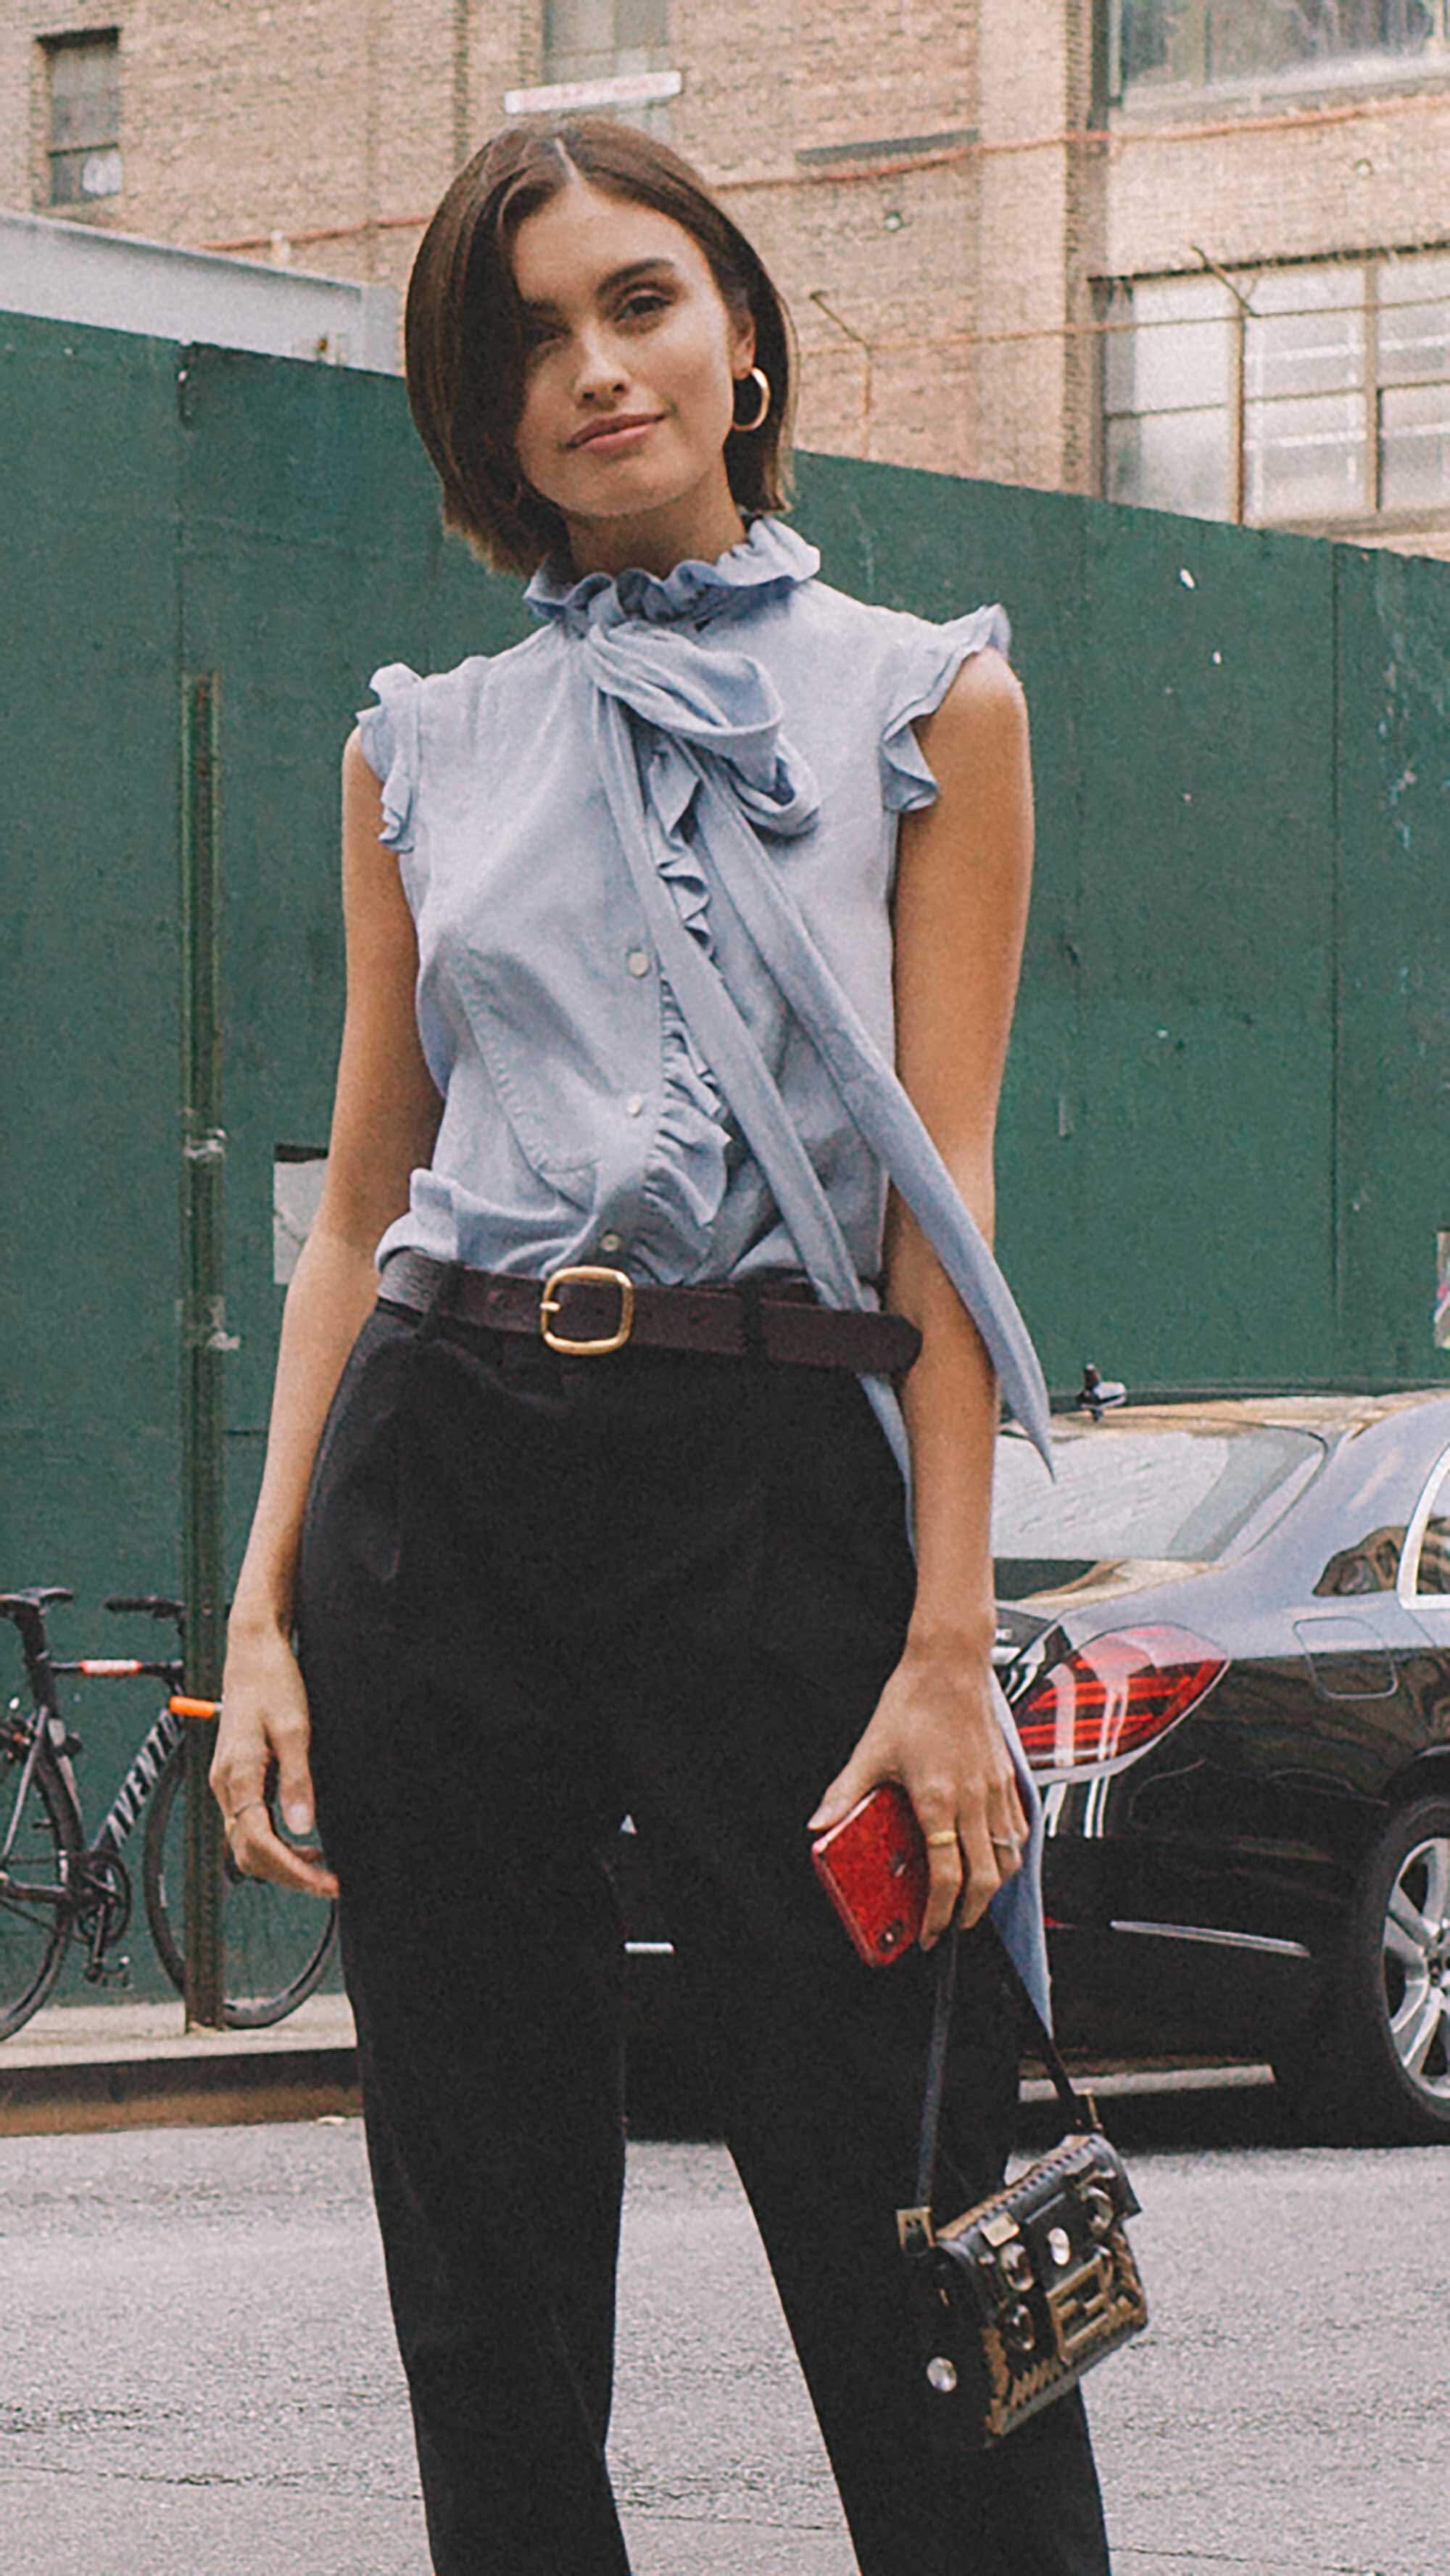 Best outfits of New York Fashion Week street style -62.jpg